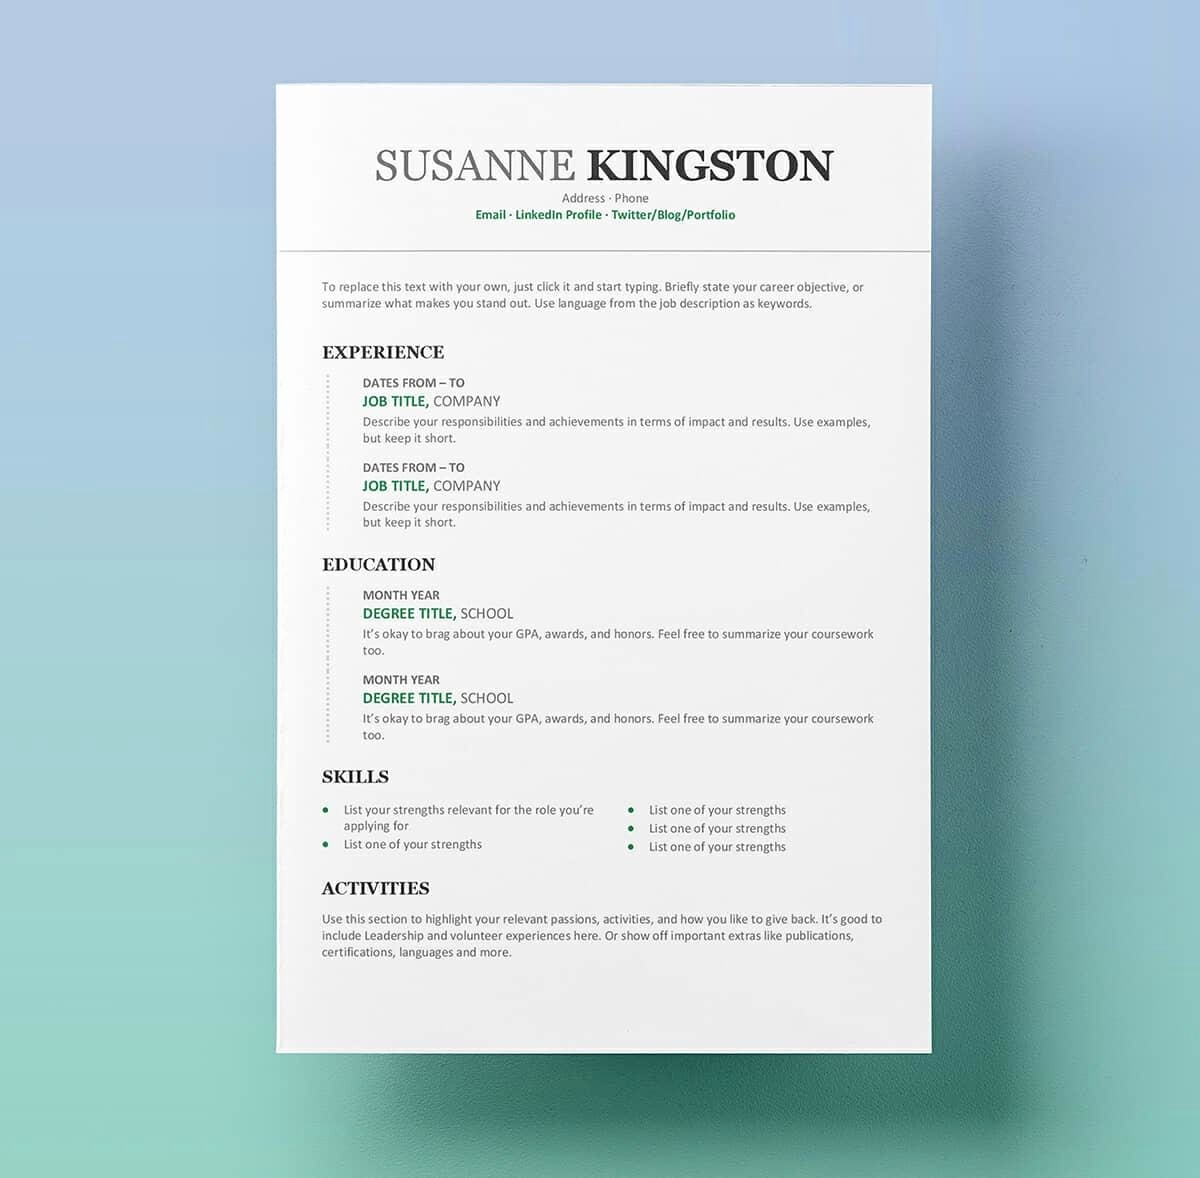 Free Resume Templates Download Word Awesome Resume Templates for Word Free 15 Examples for Download